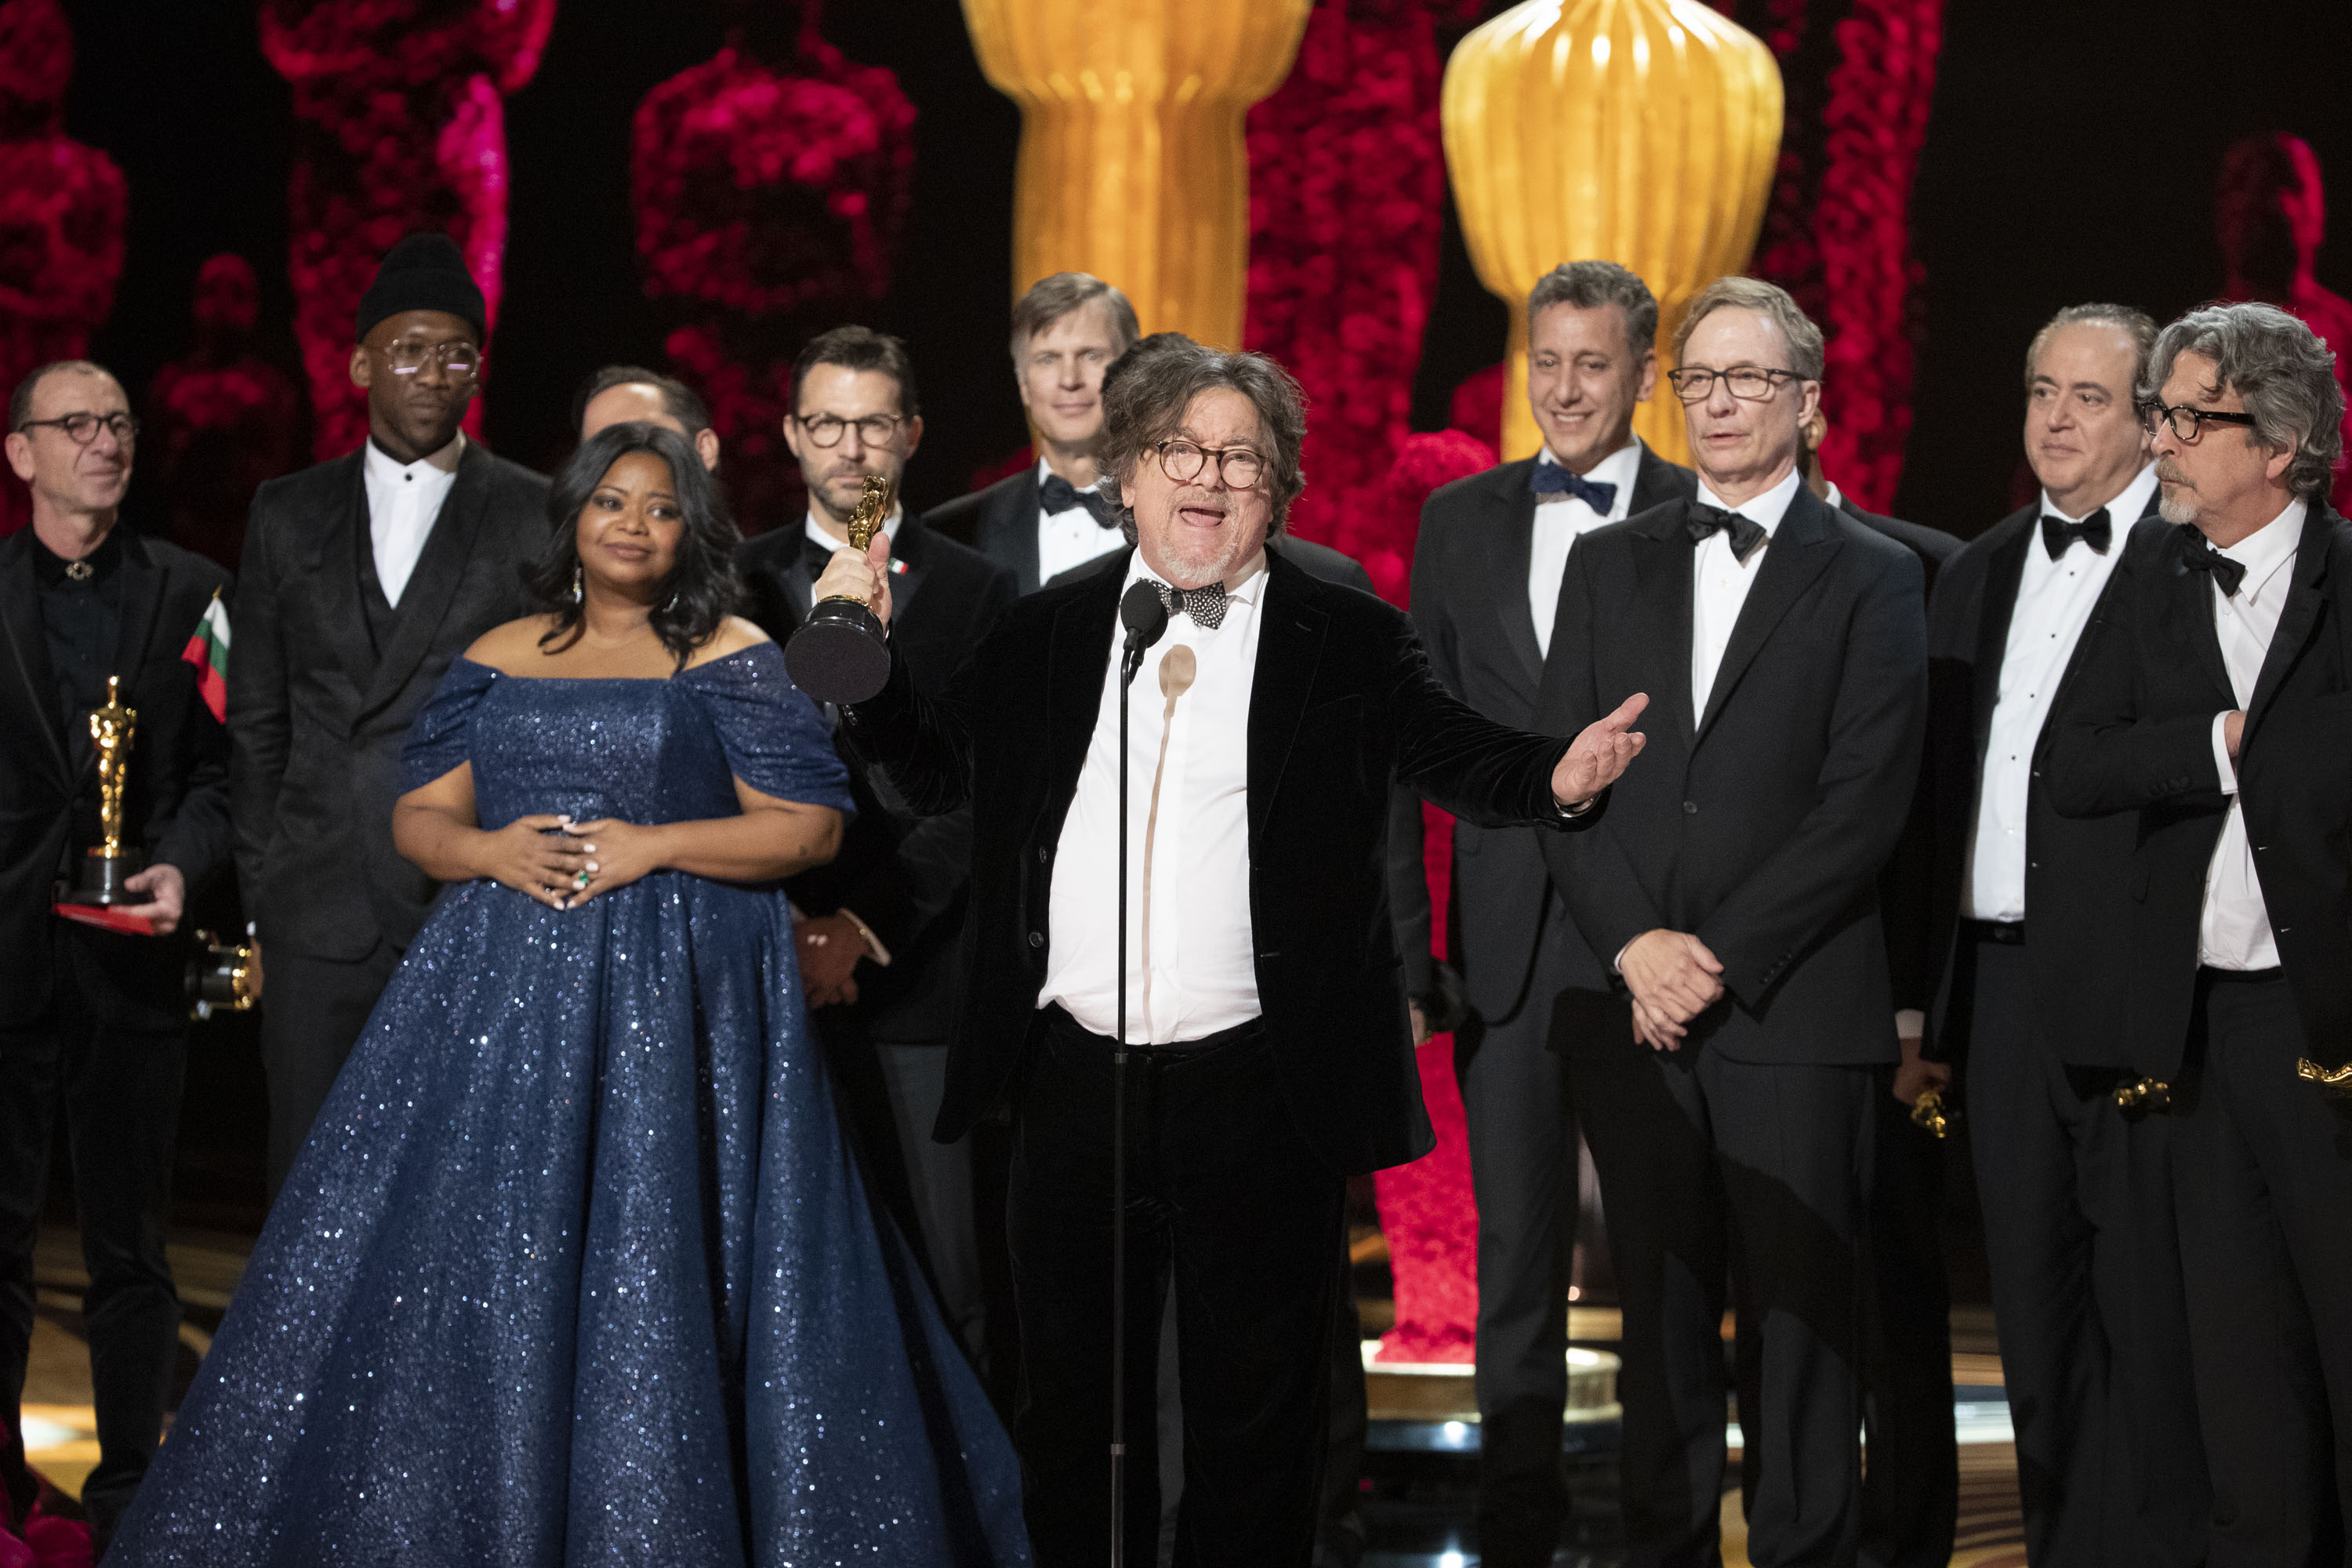 Photo Highlights: 2019 Academy Awards | LATF USA